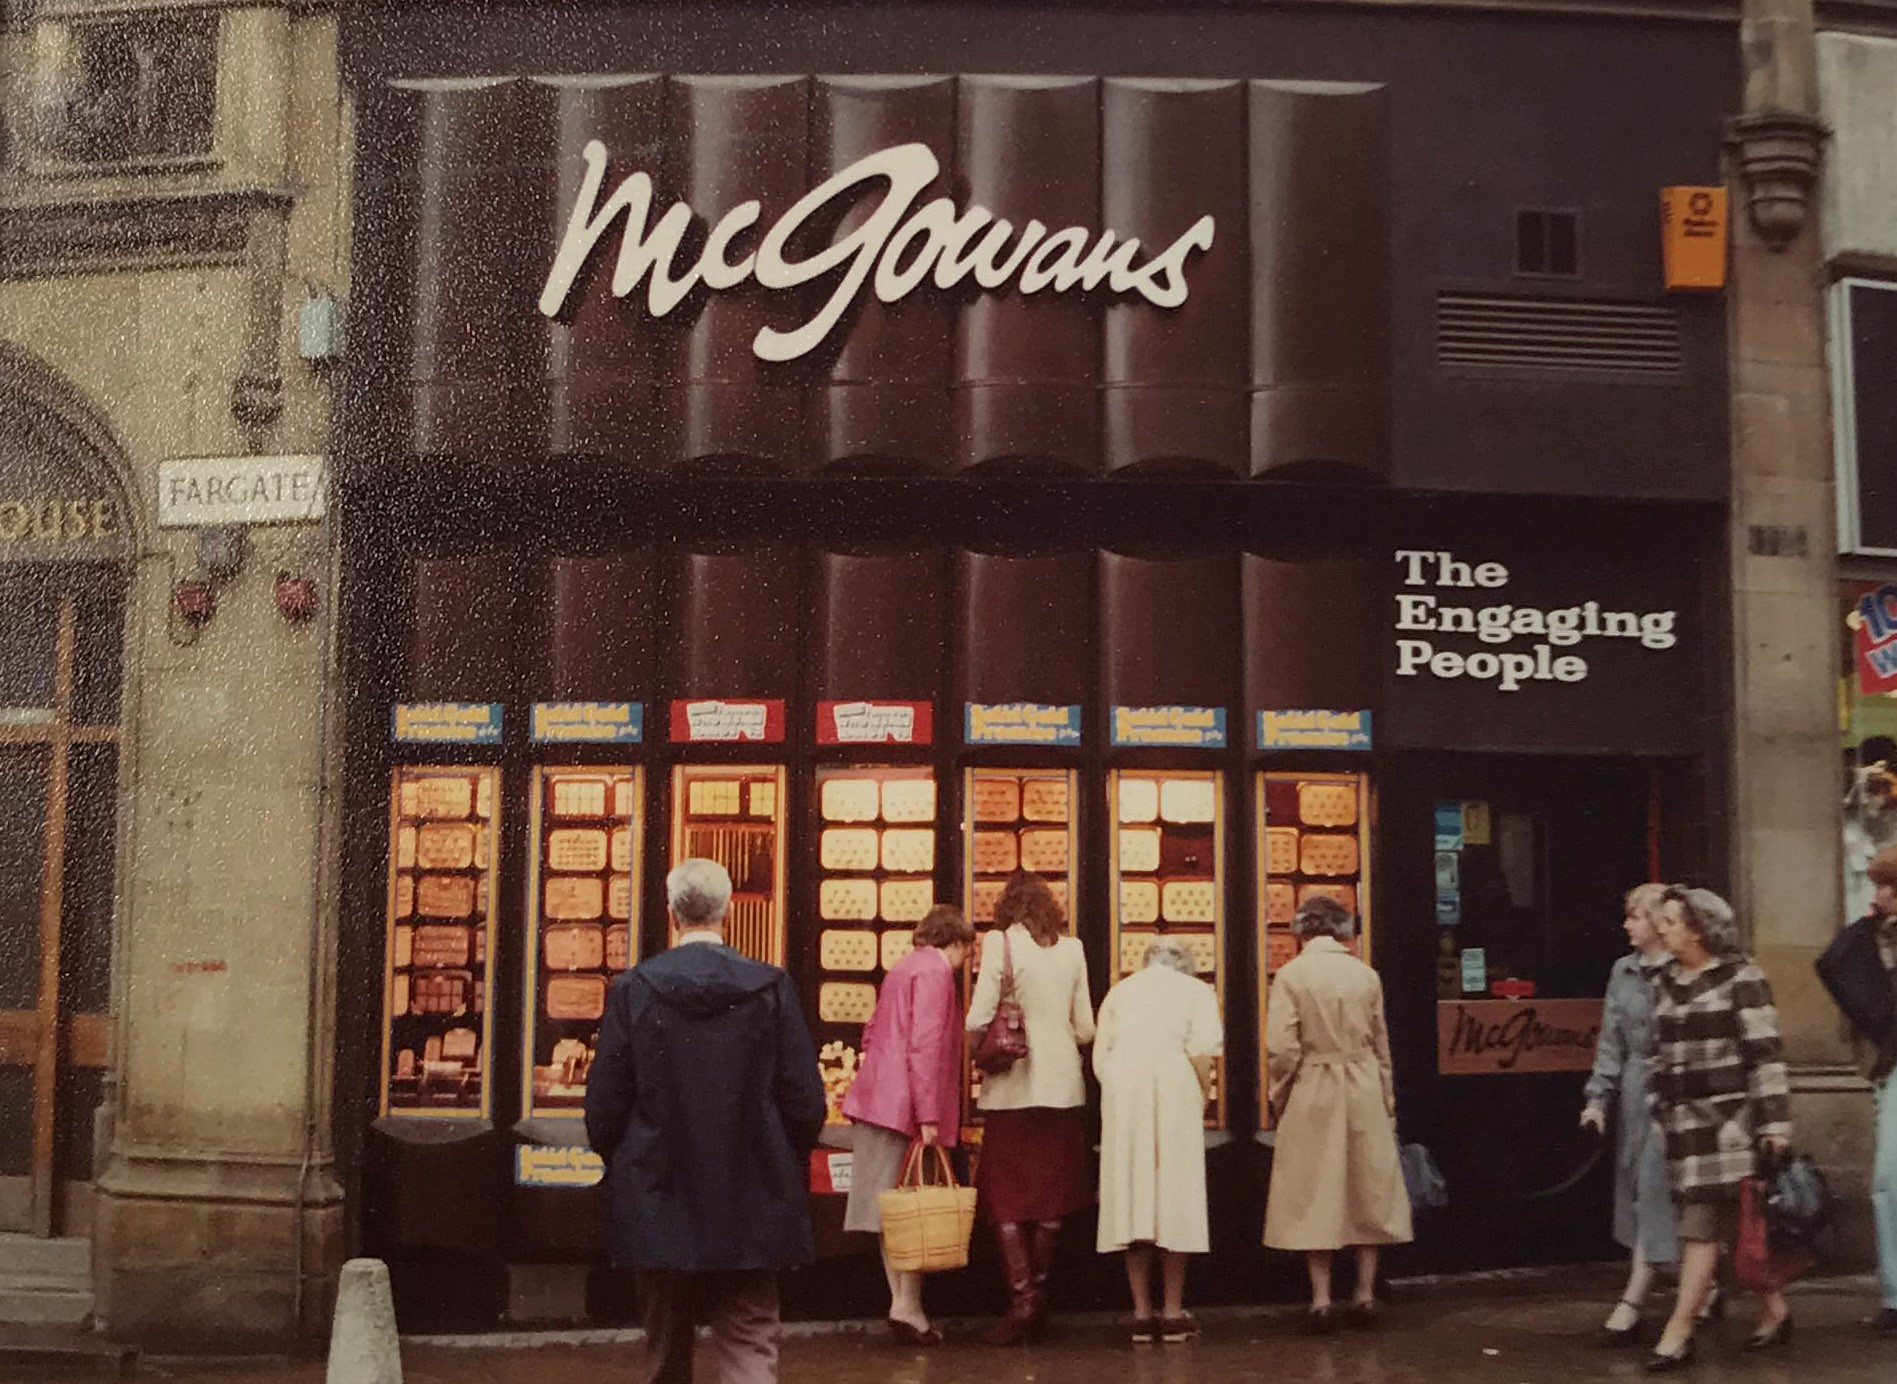 McGowans is one of the most reputable family jewellers in Scotland